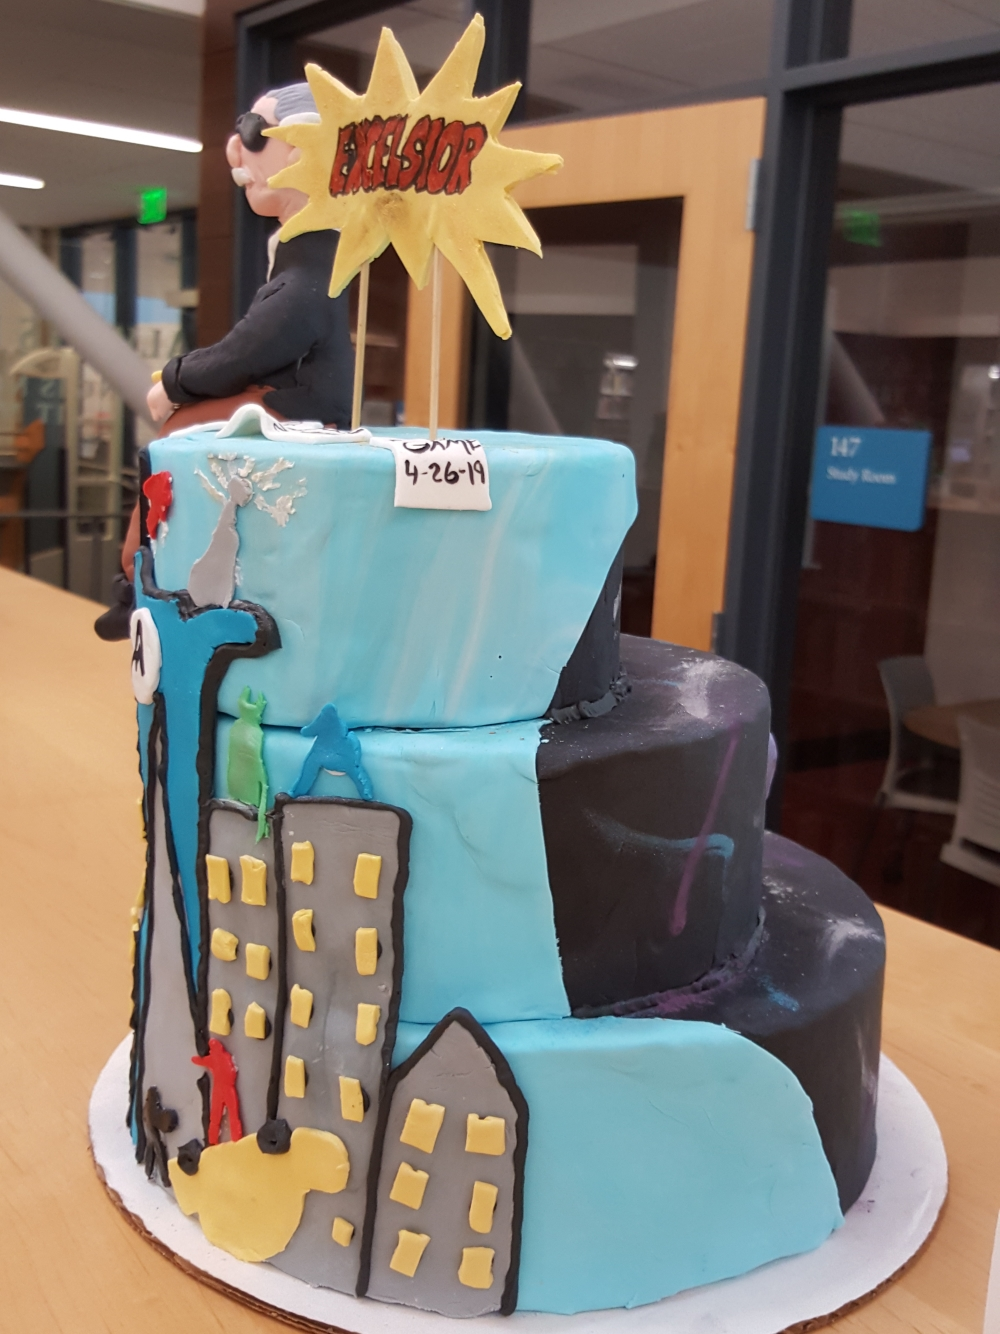 2019 Cakes Stan Lee - side view